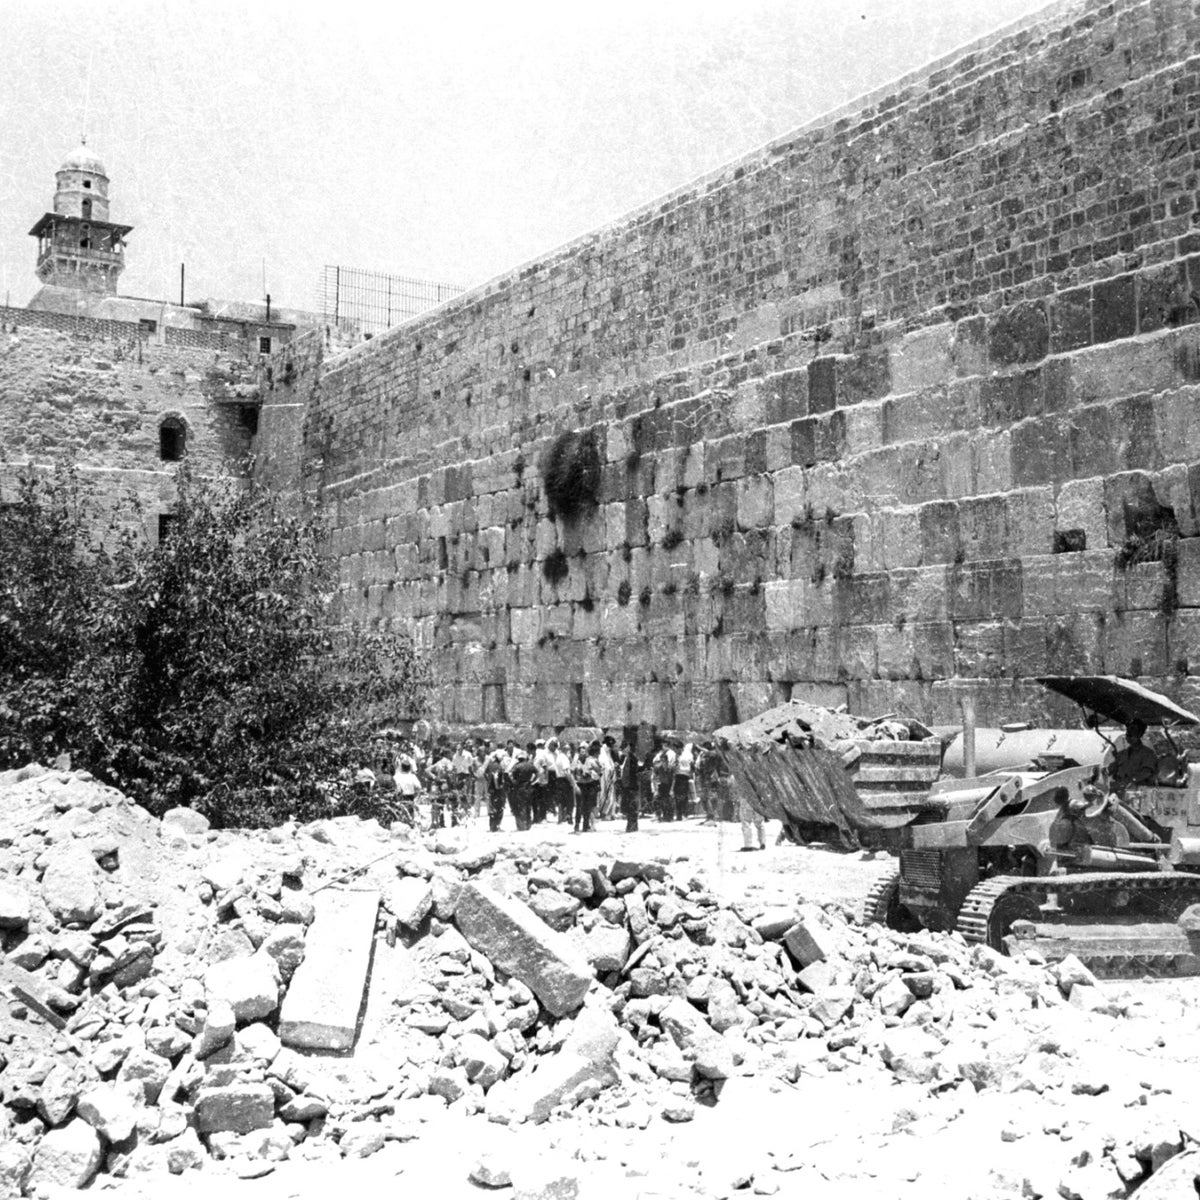 Demolition of the Mughrabi Quarter, 1967